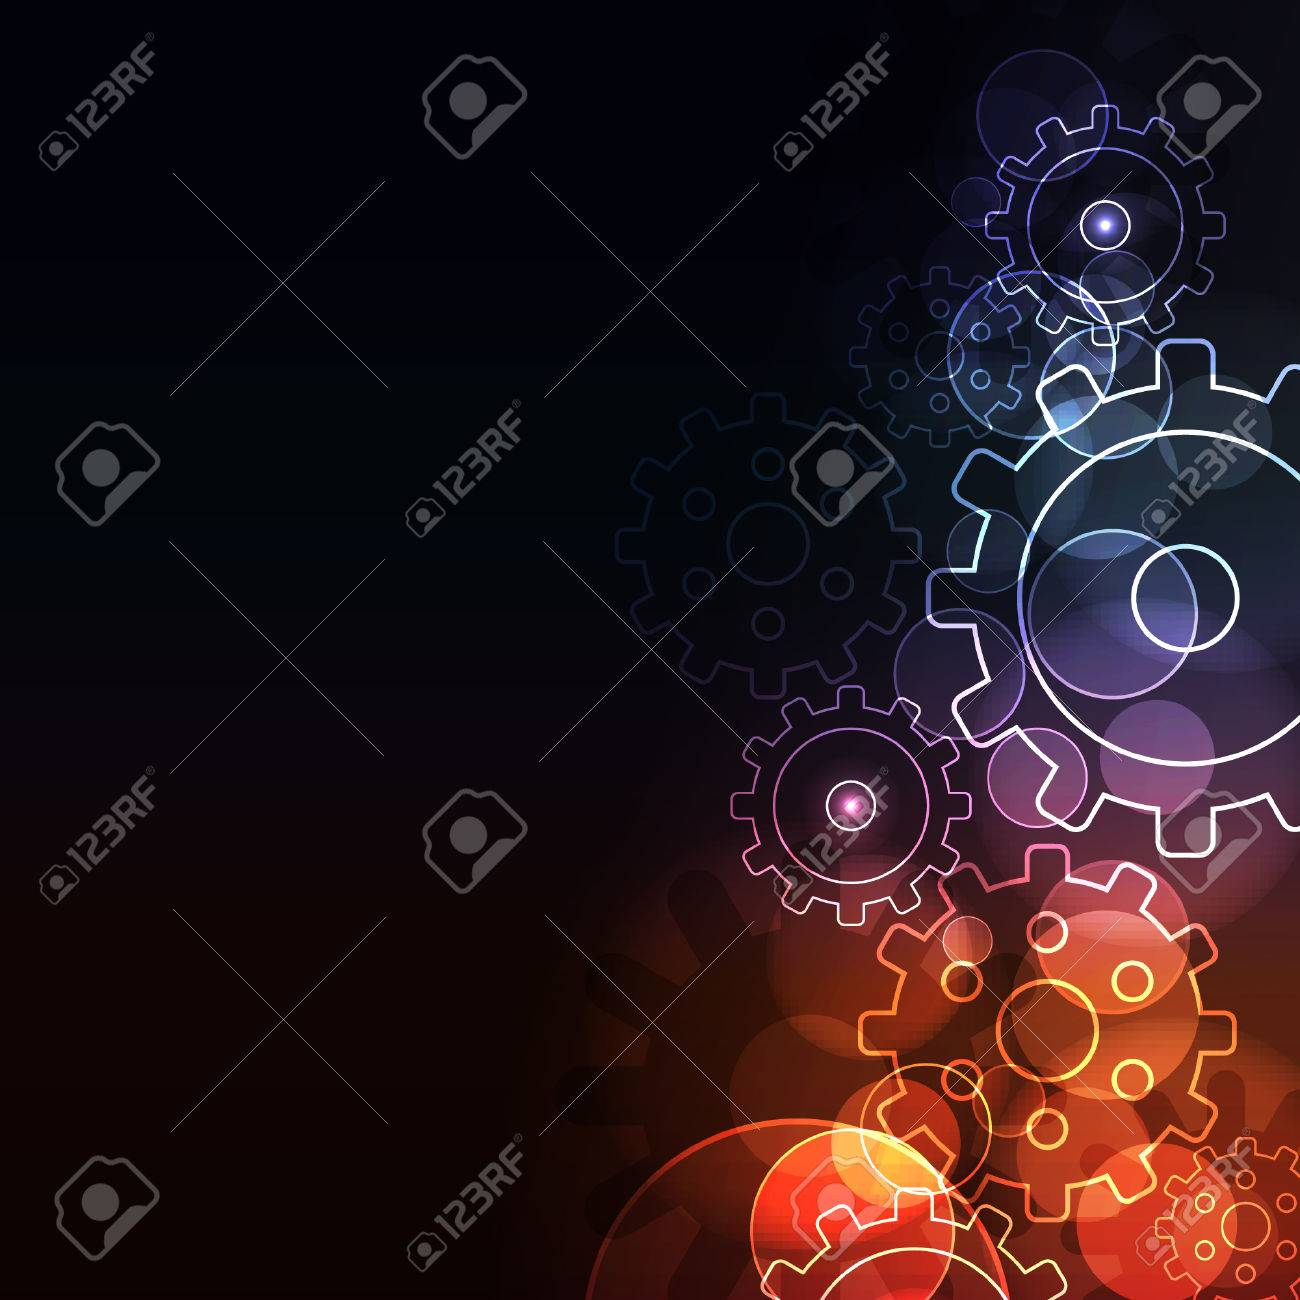 Stylized abstract background with  glowing elements Stock Vector - 8340898